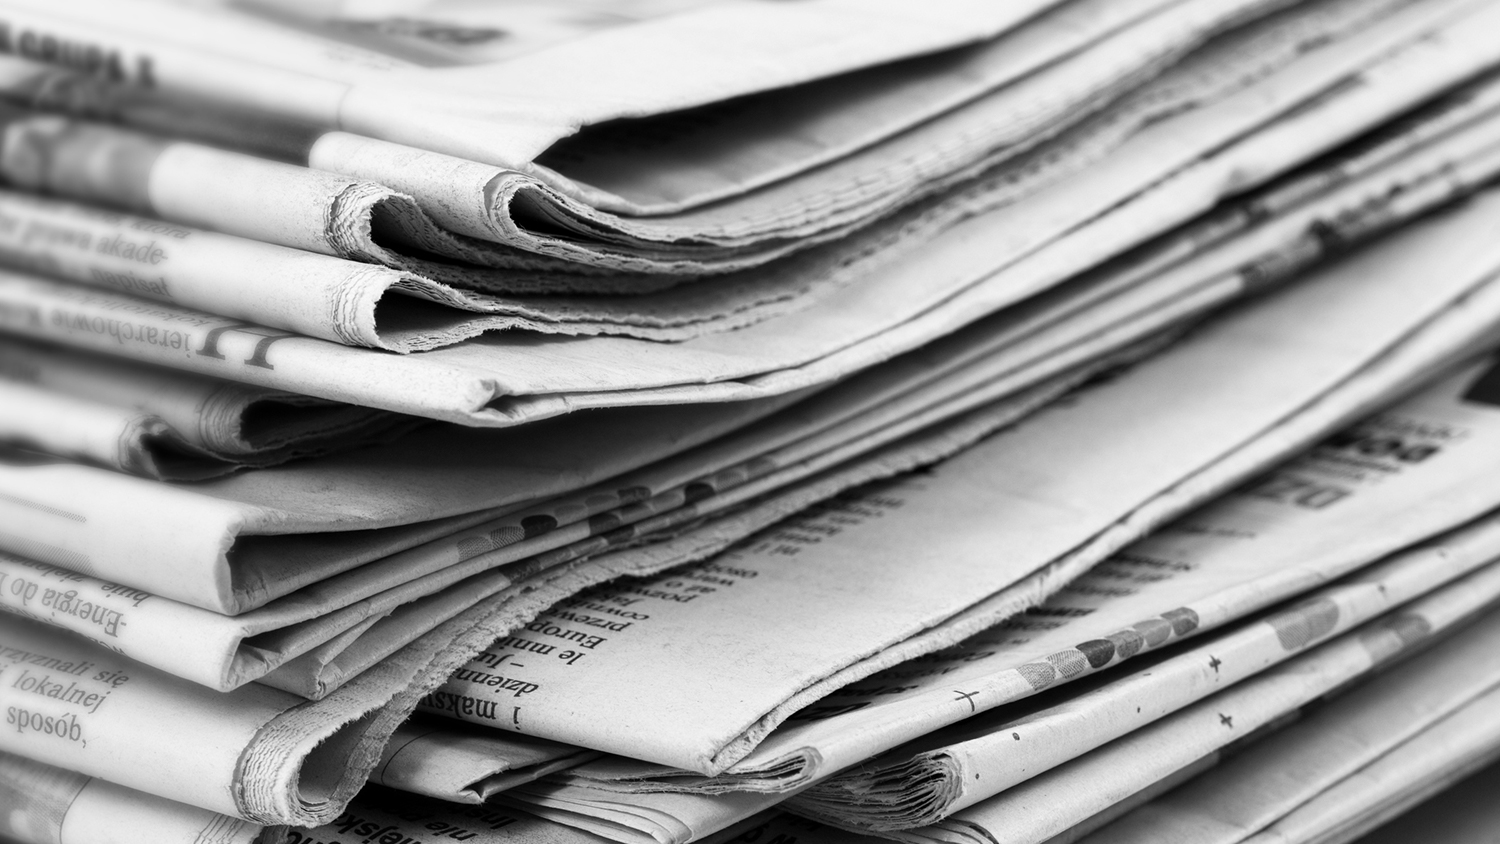 newspaperstack-blog-062217